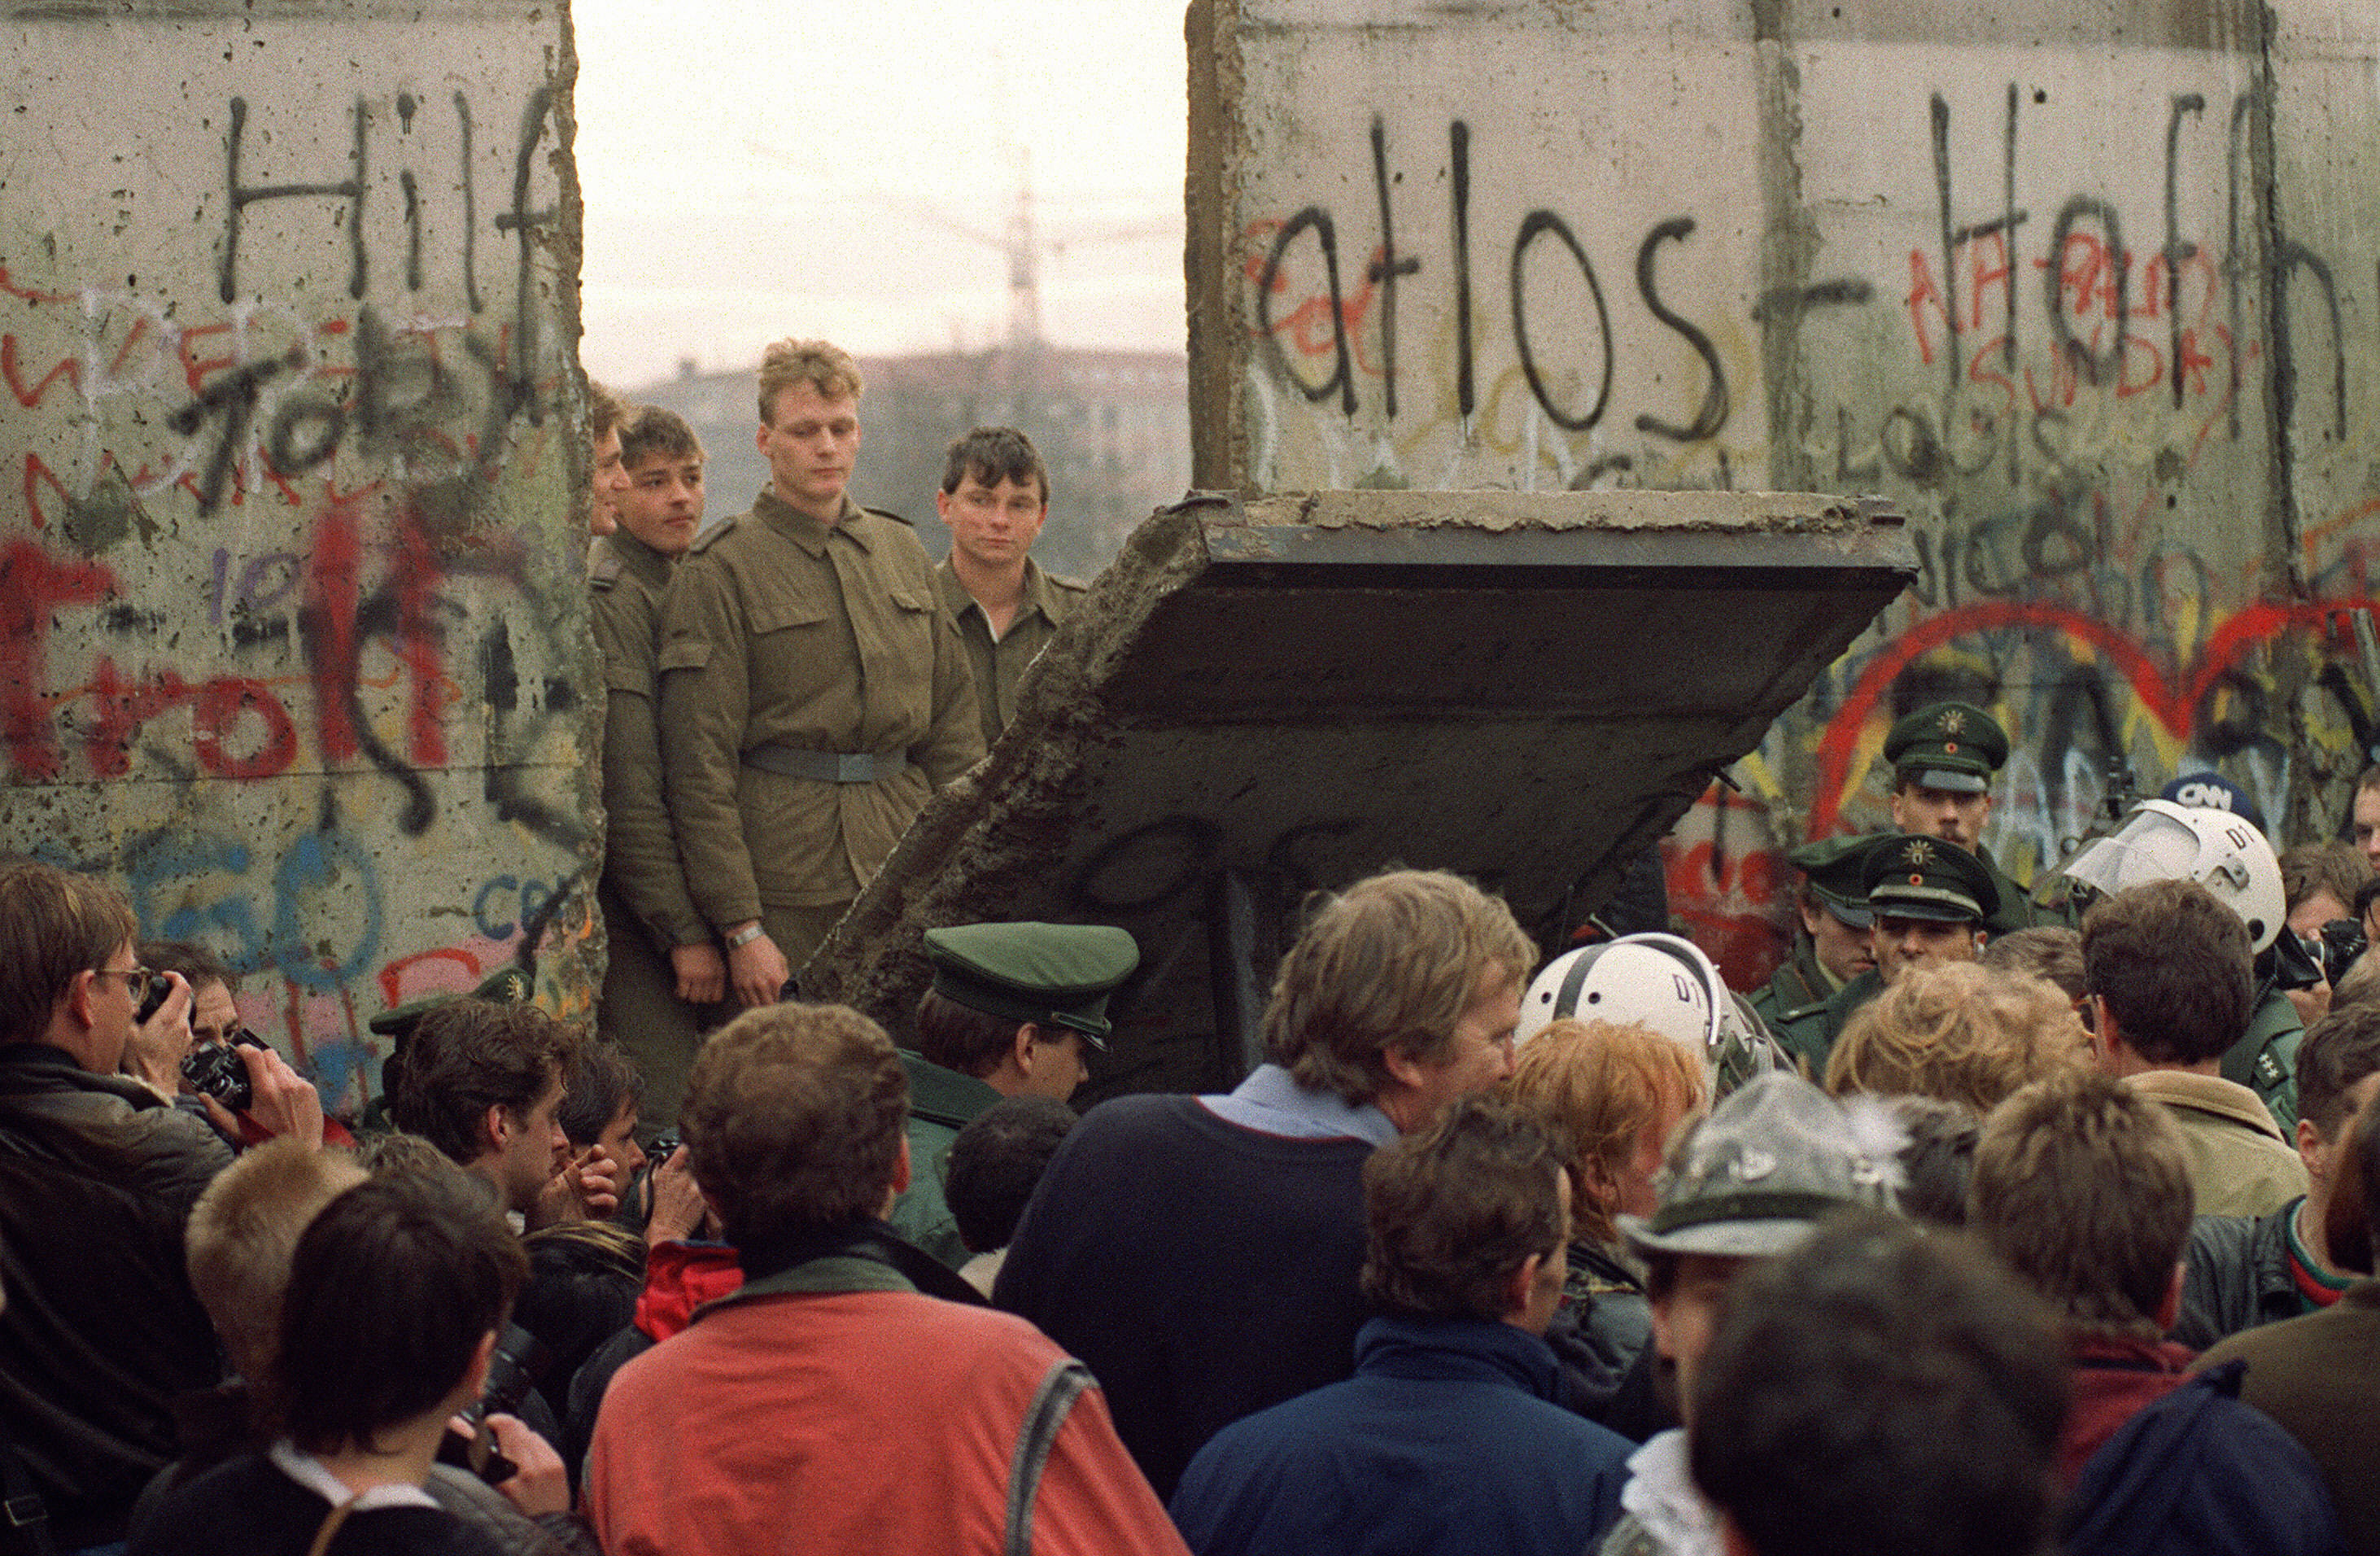 A crowd in front of the Berlin Wall on Nov. 11, 1989 watches border guards demolish a section of the wall in order to open a new crossing point between East and West Berlin in Germany.